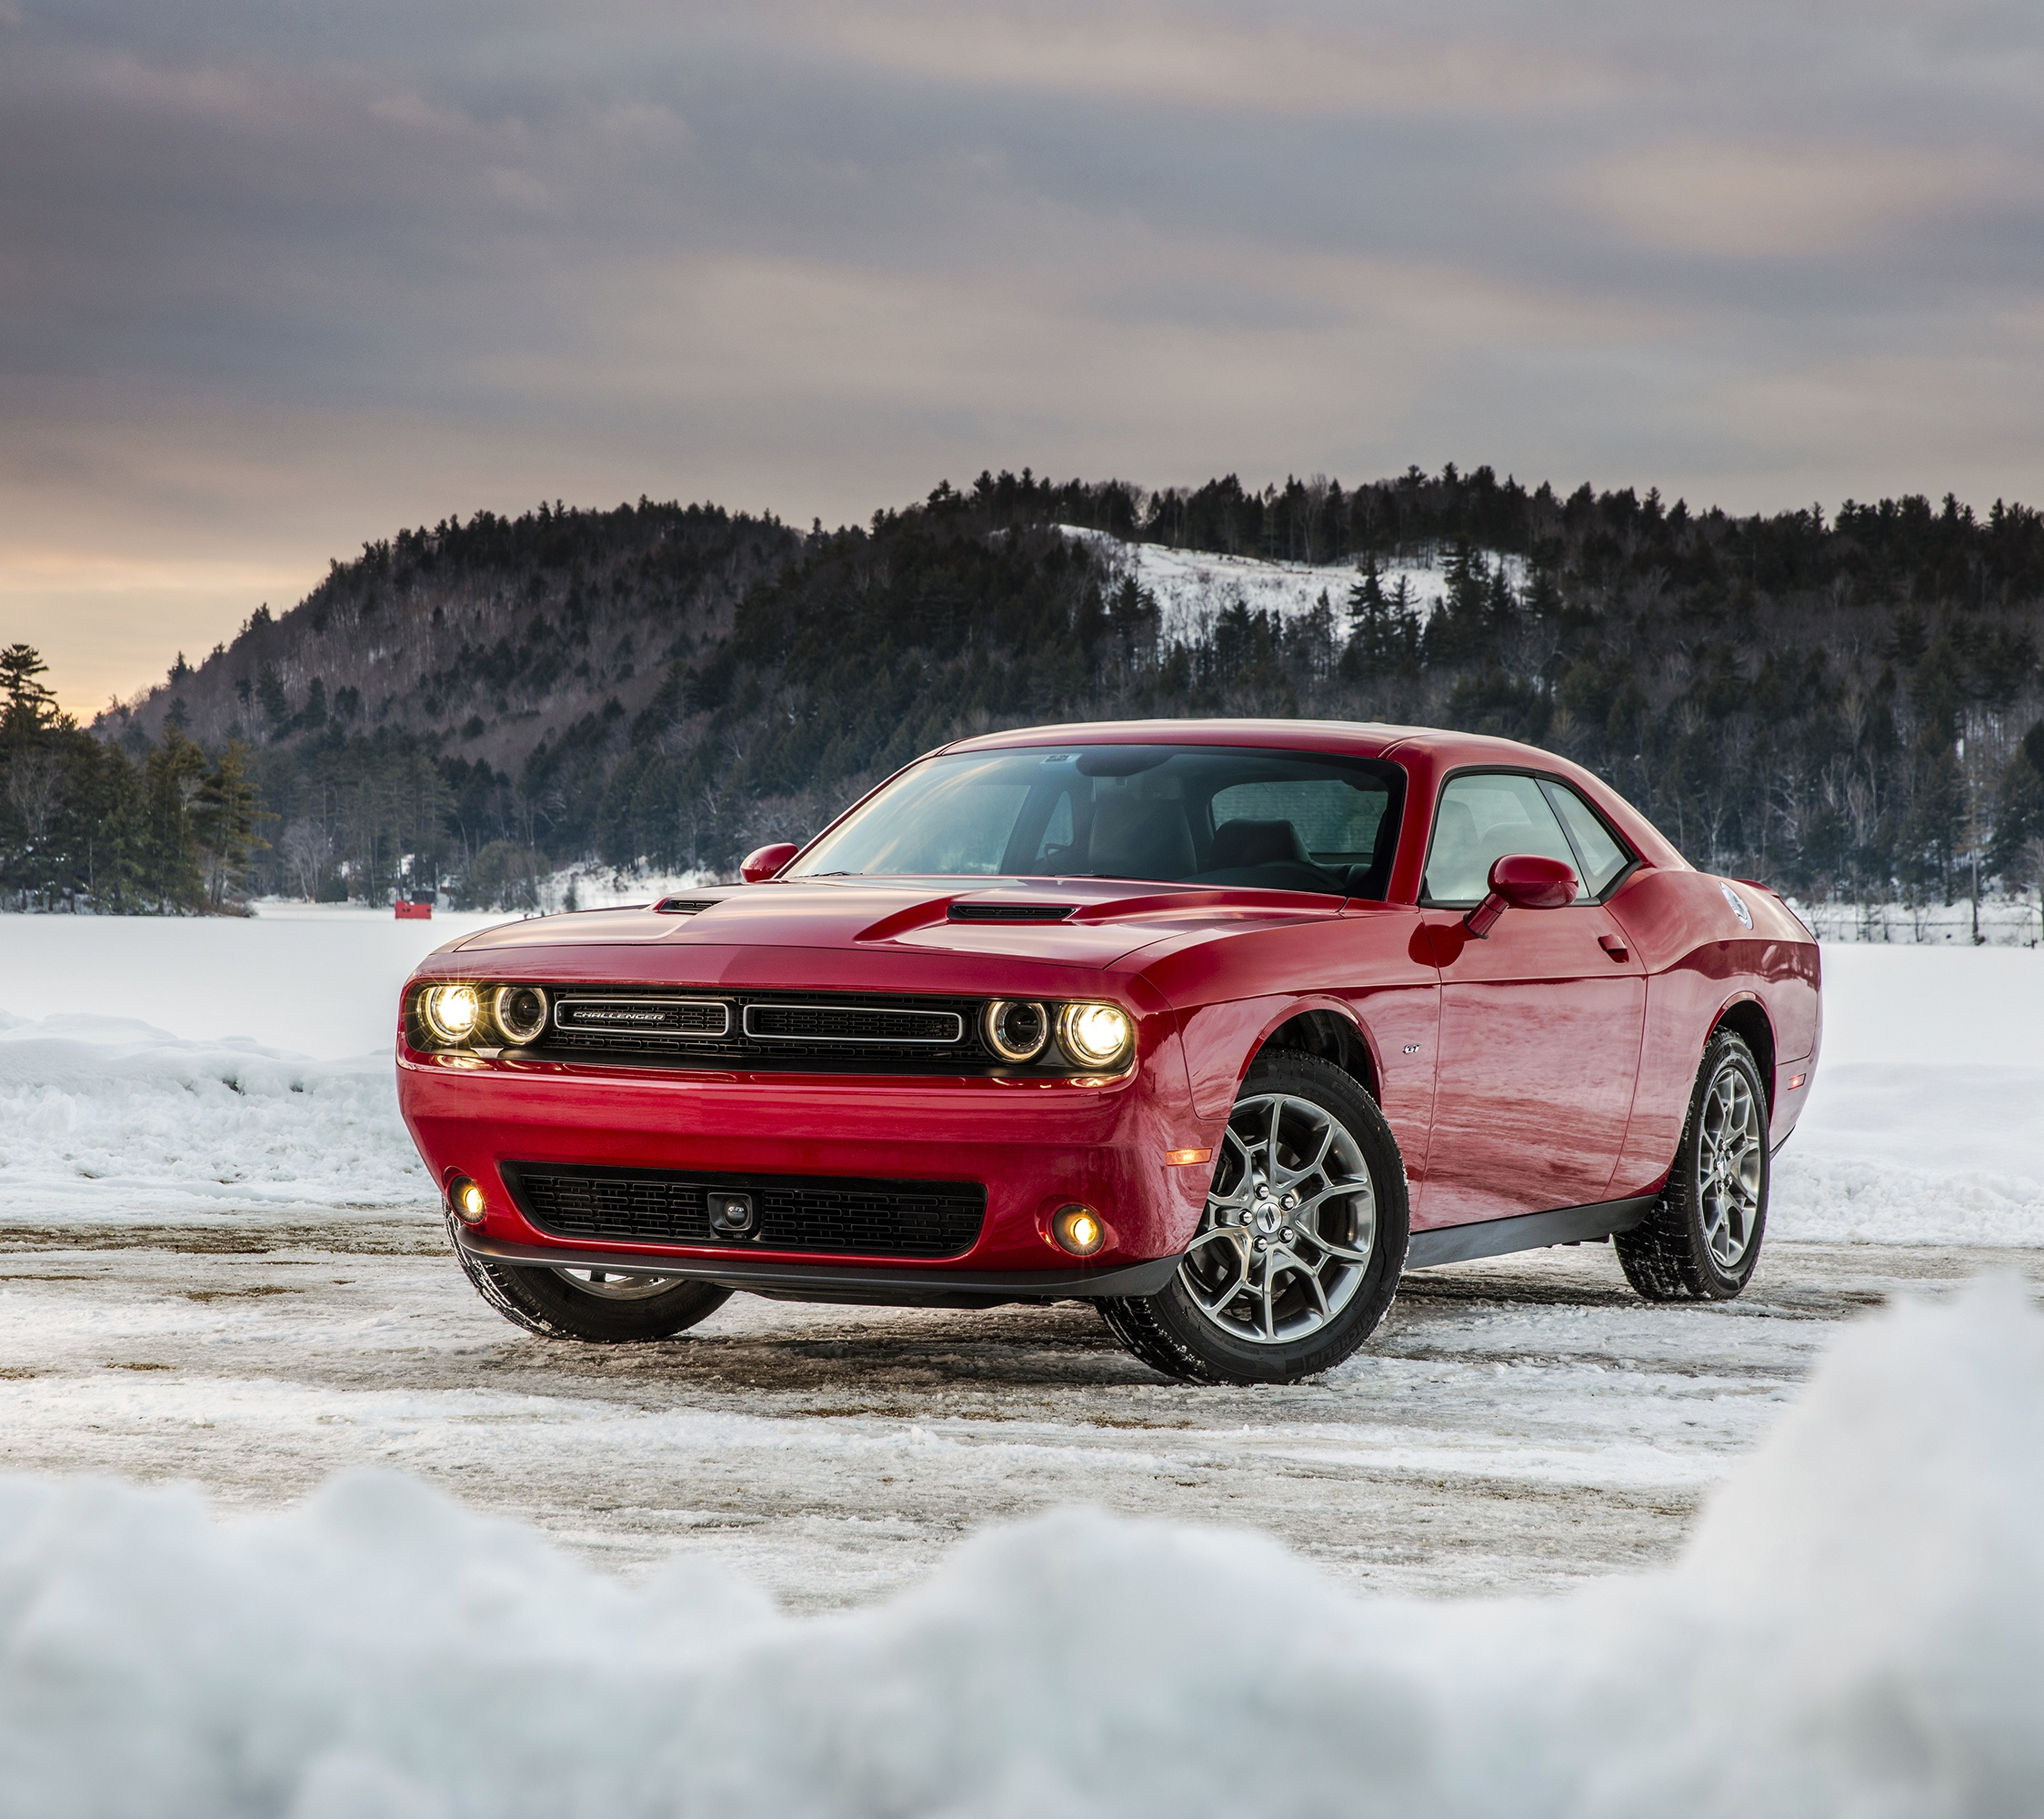 Dodge challenger, red muscle car, 2248x2248 wallpaper